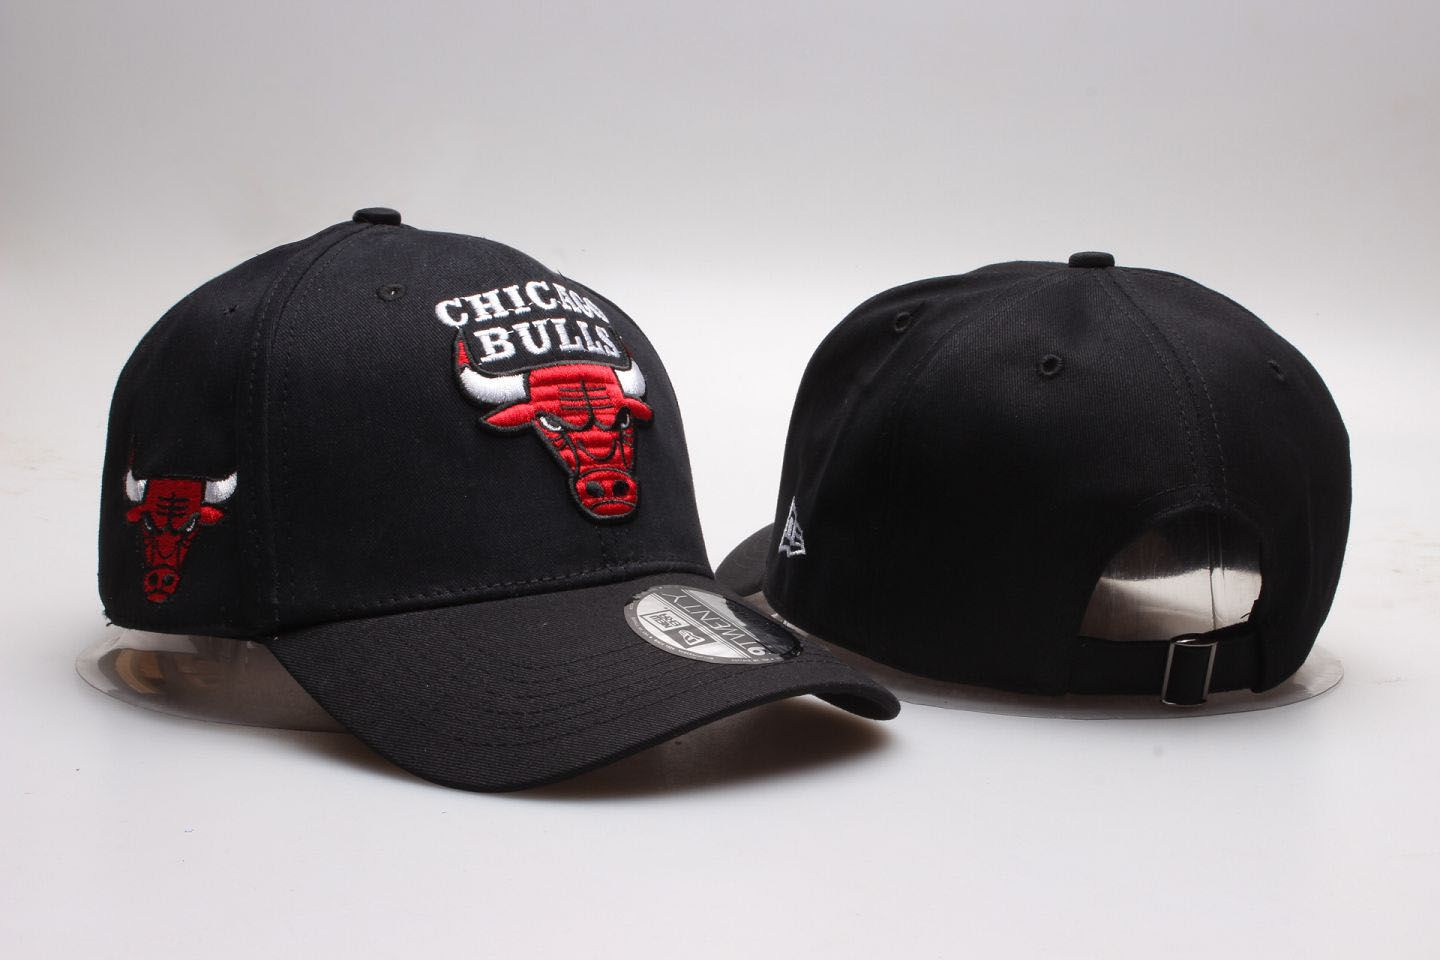 NBA Chicago Bulls Snapback hat 2018112517